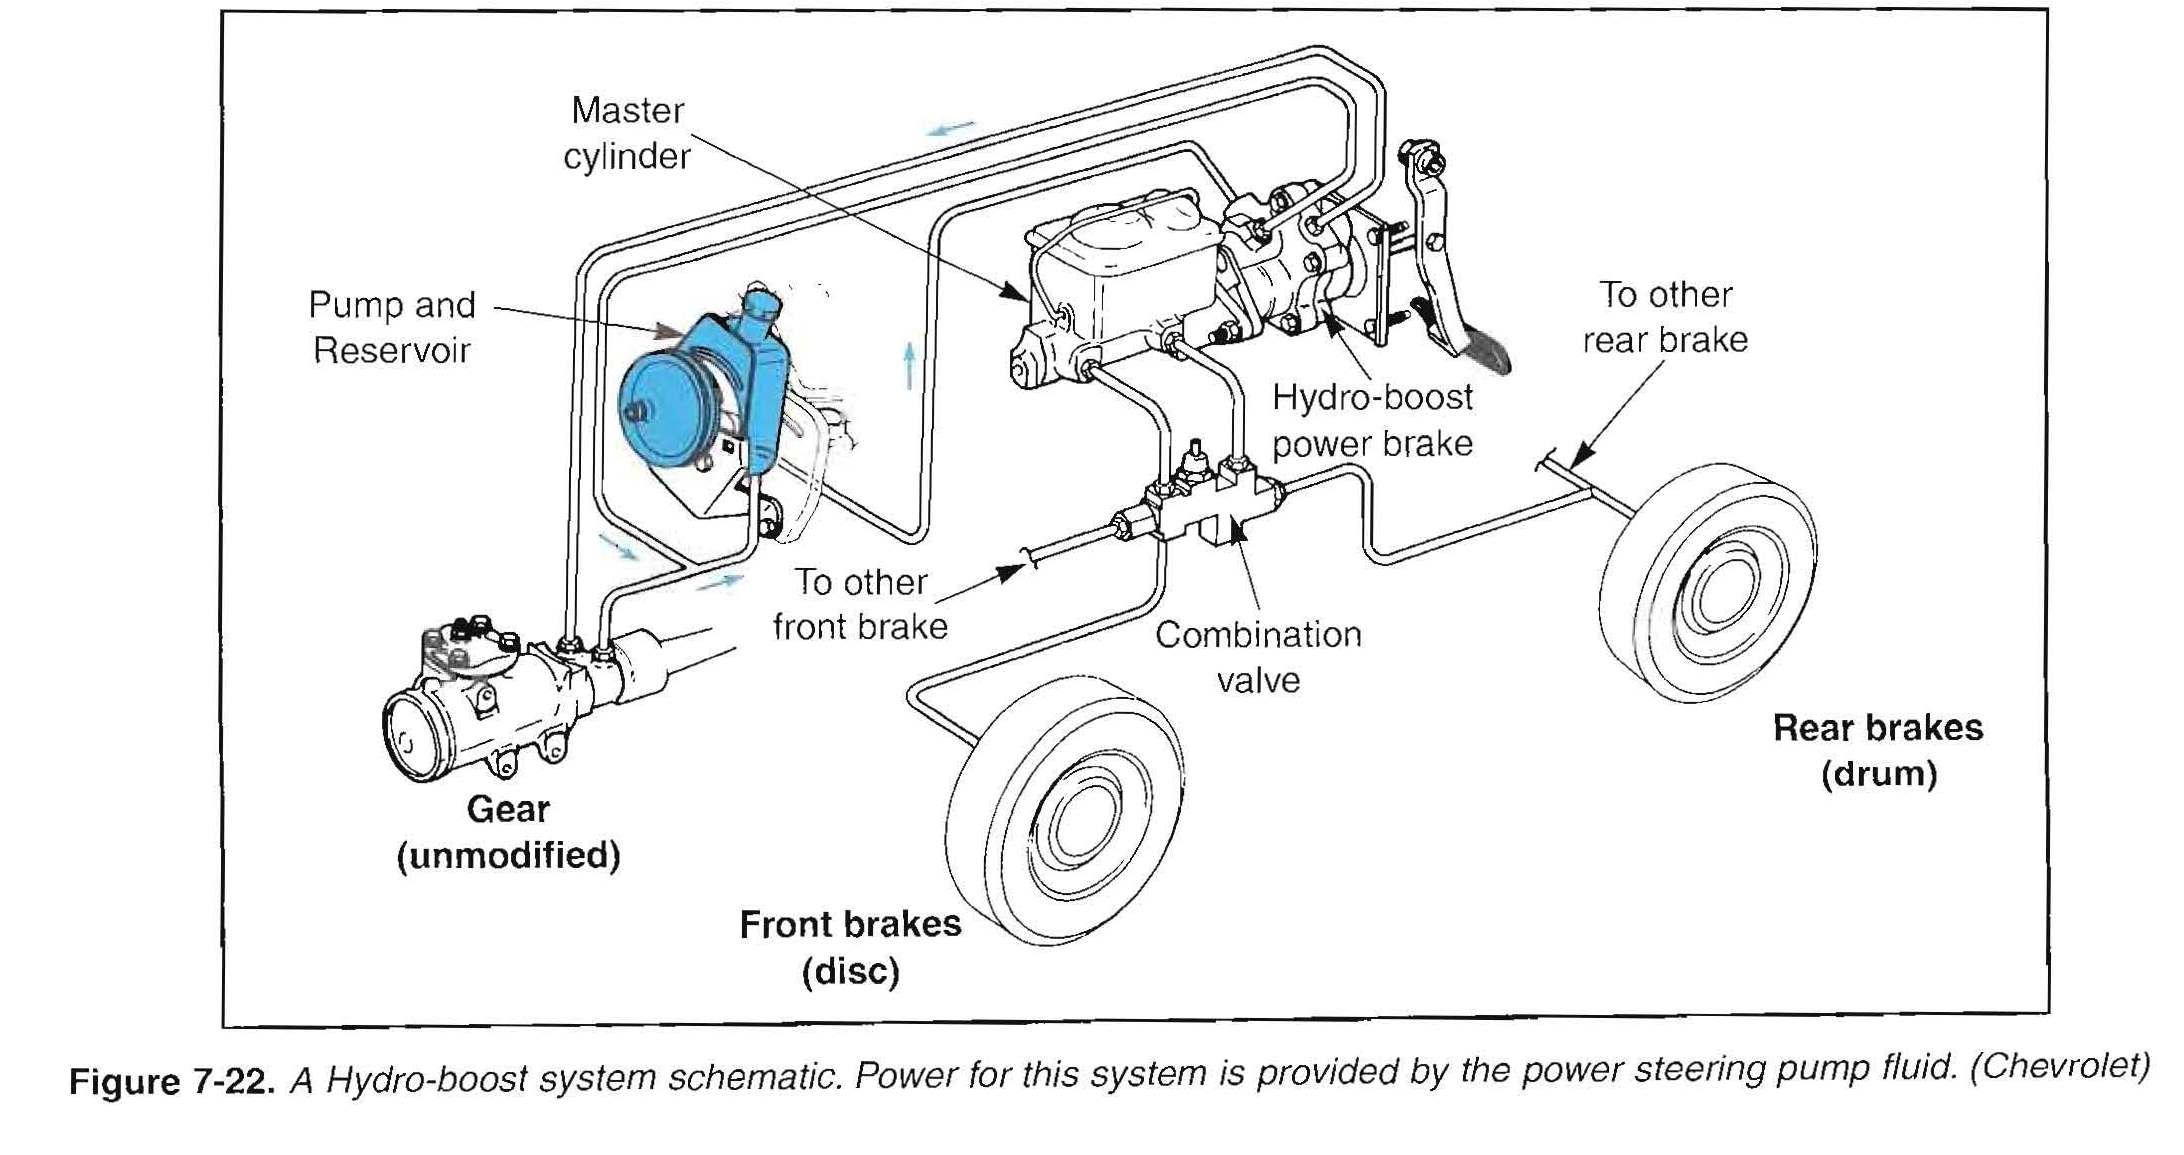 Nissan Sentra 2007 Engine Diagram besides Mk3 Ford Focus Jack Points also 2009 Chevrolet Spark Wiring Diagram And Electrical System further Cadillac Seville Radio Wiring Diagram also 2004 Ford F150 Front Suspension Diagram. on jeep undercarriage diagram